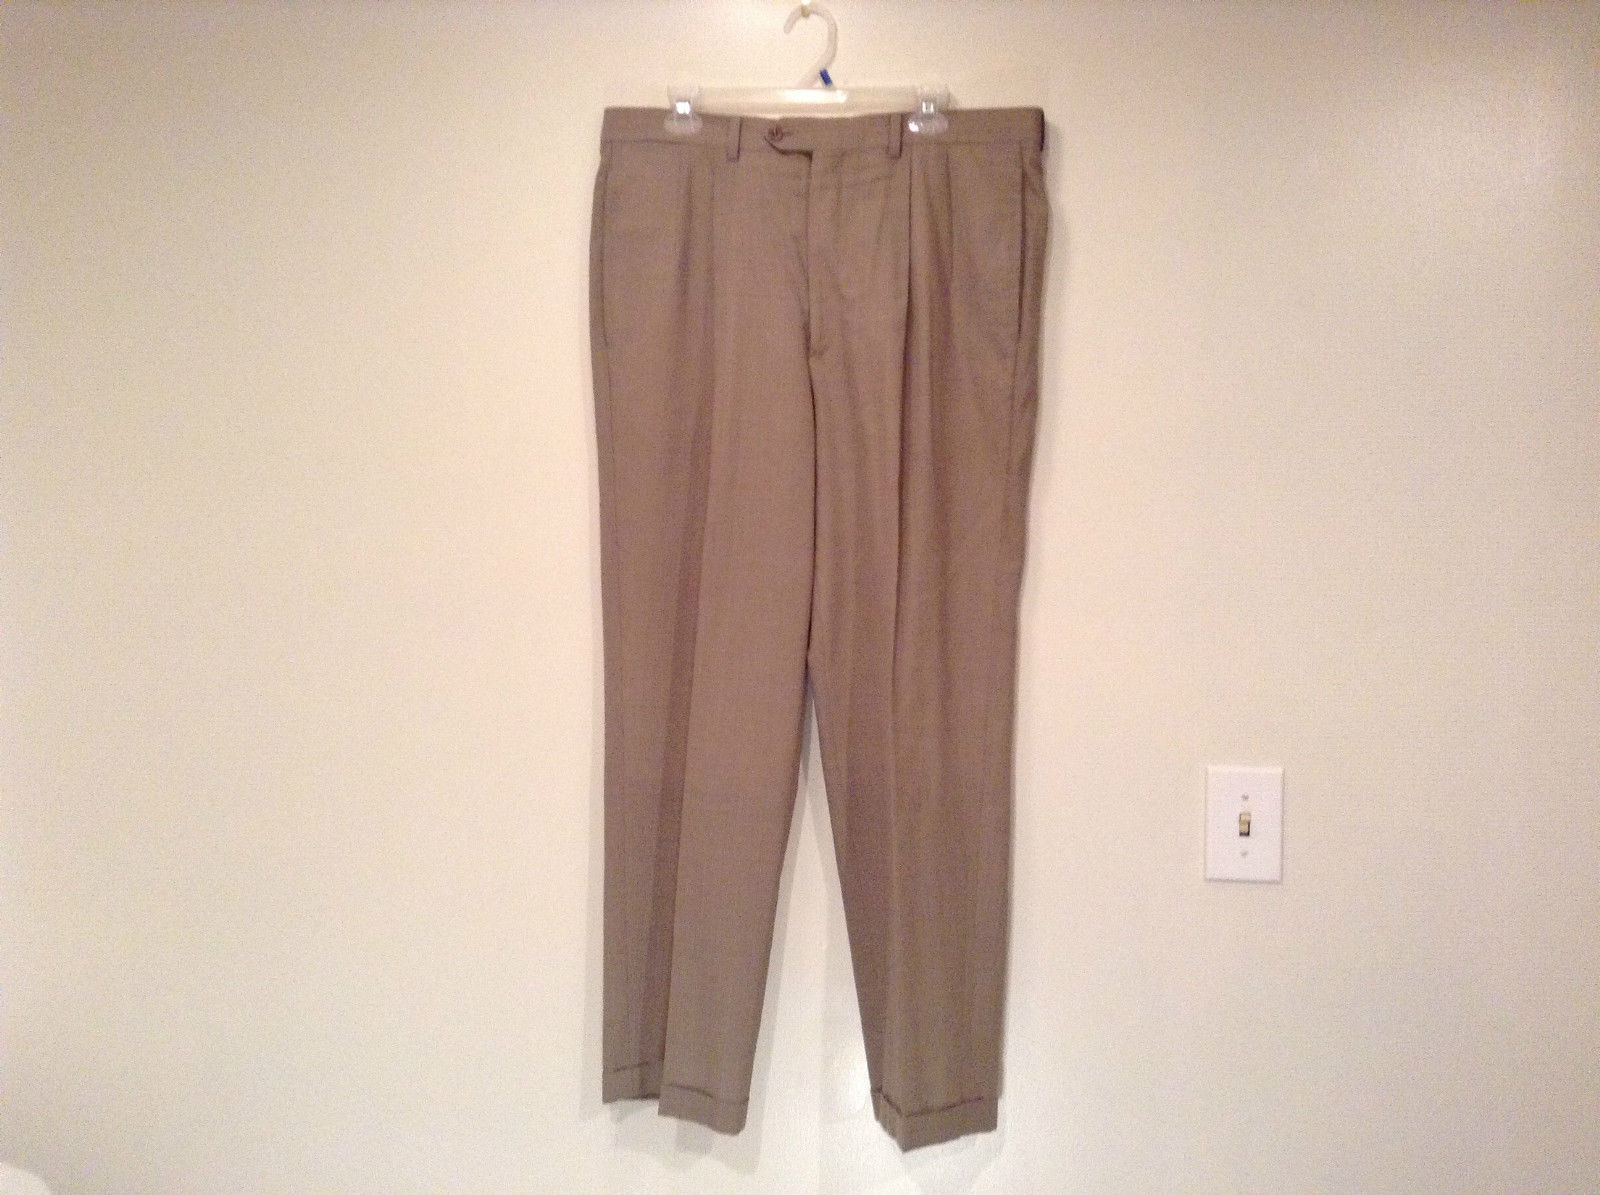 Light Brown Beige Plaid Pleated Front Dress Pants NO TAGS Measurements Below